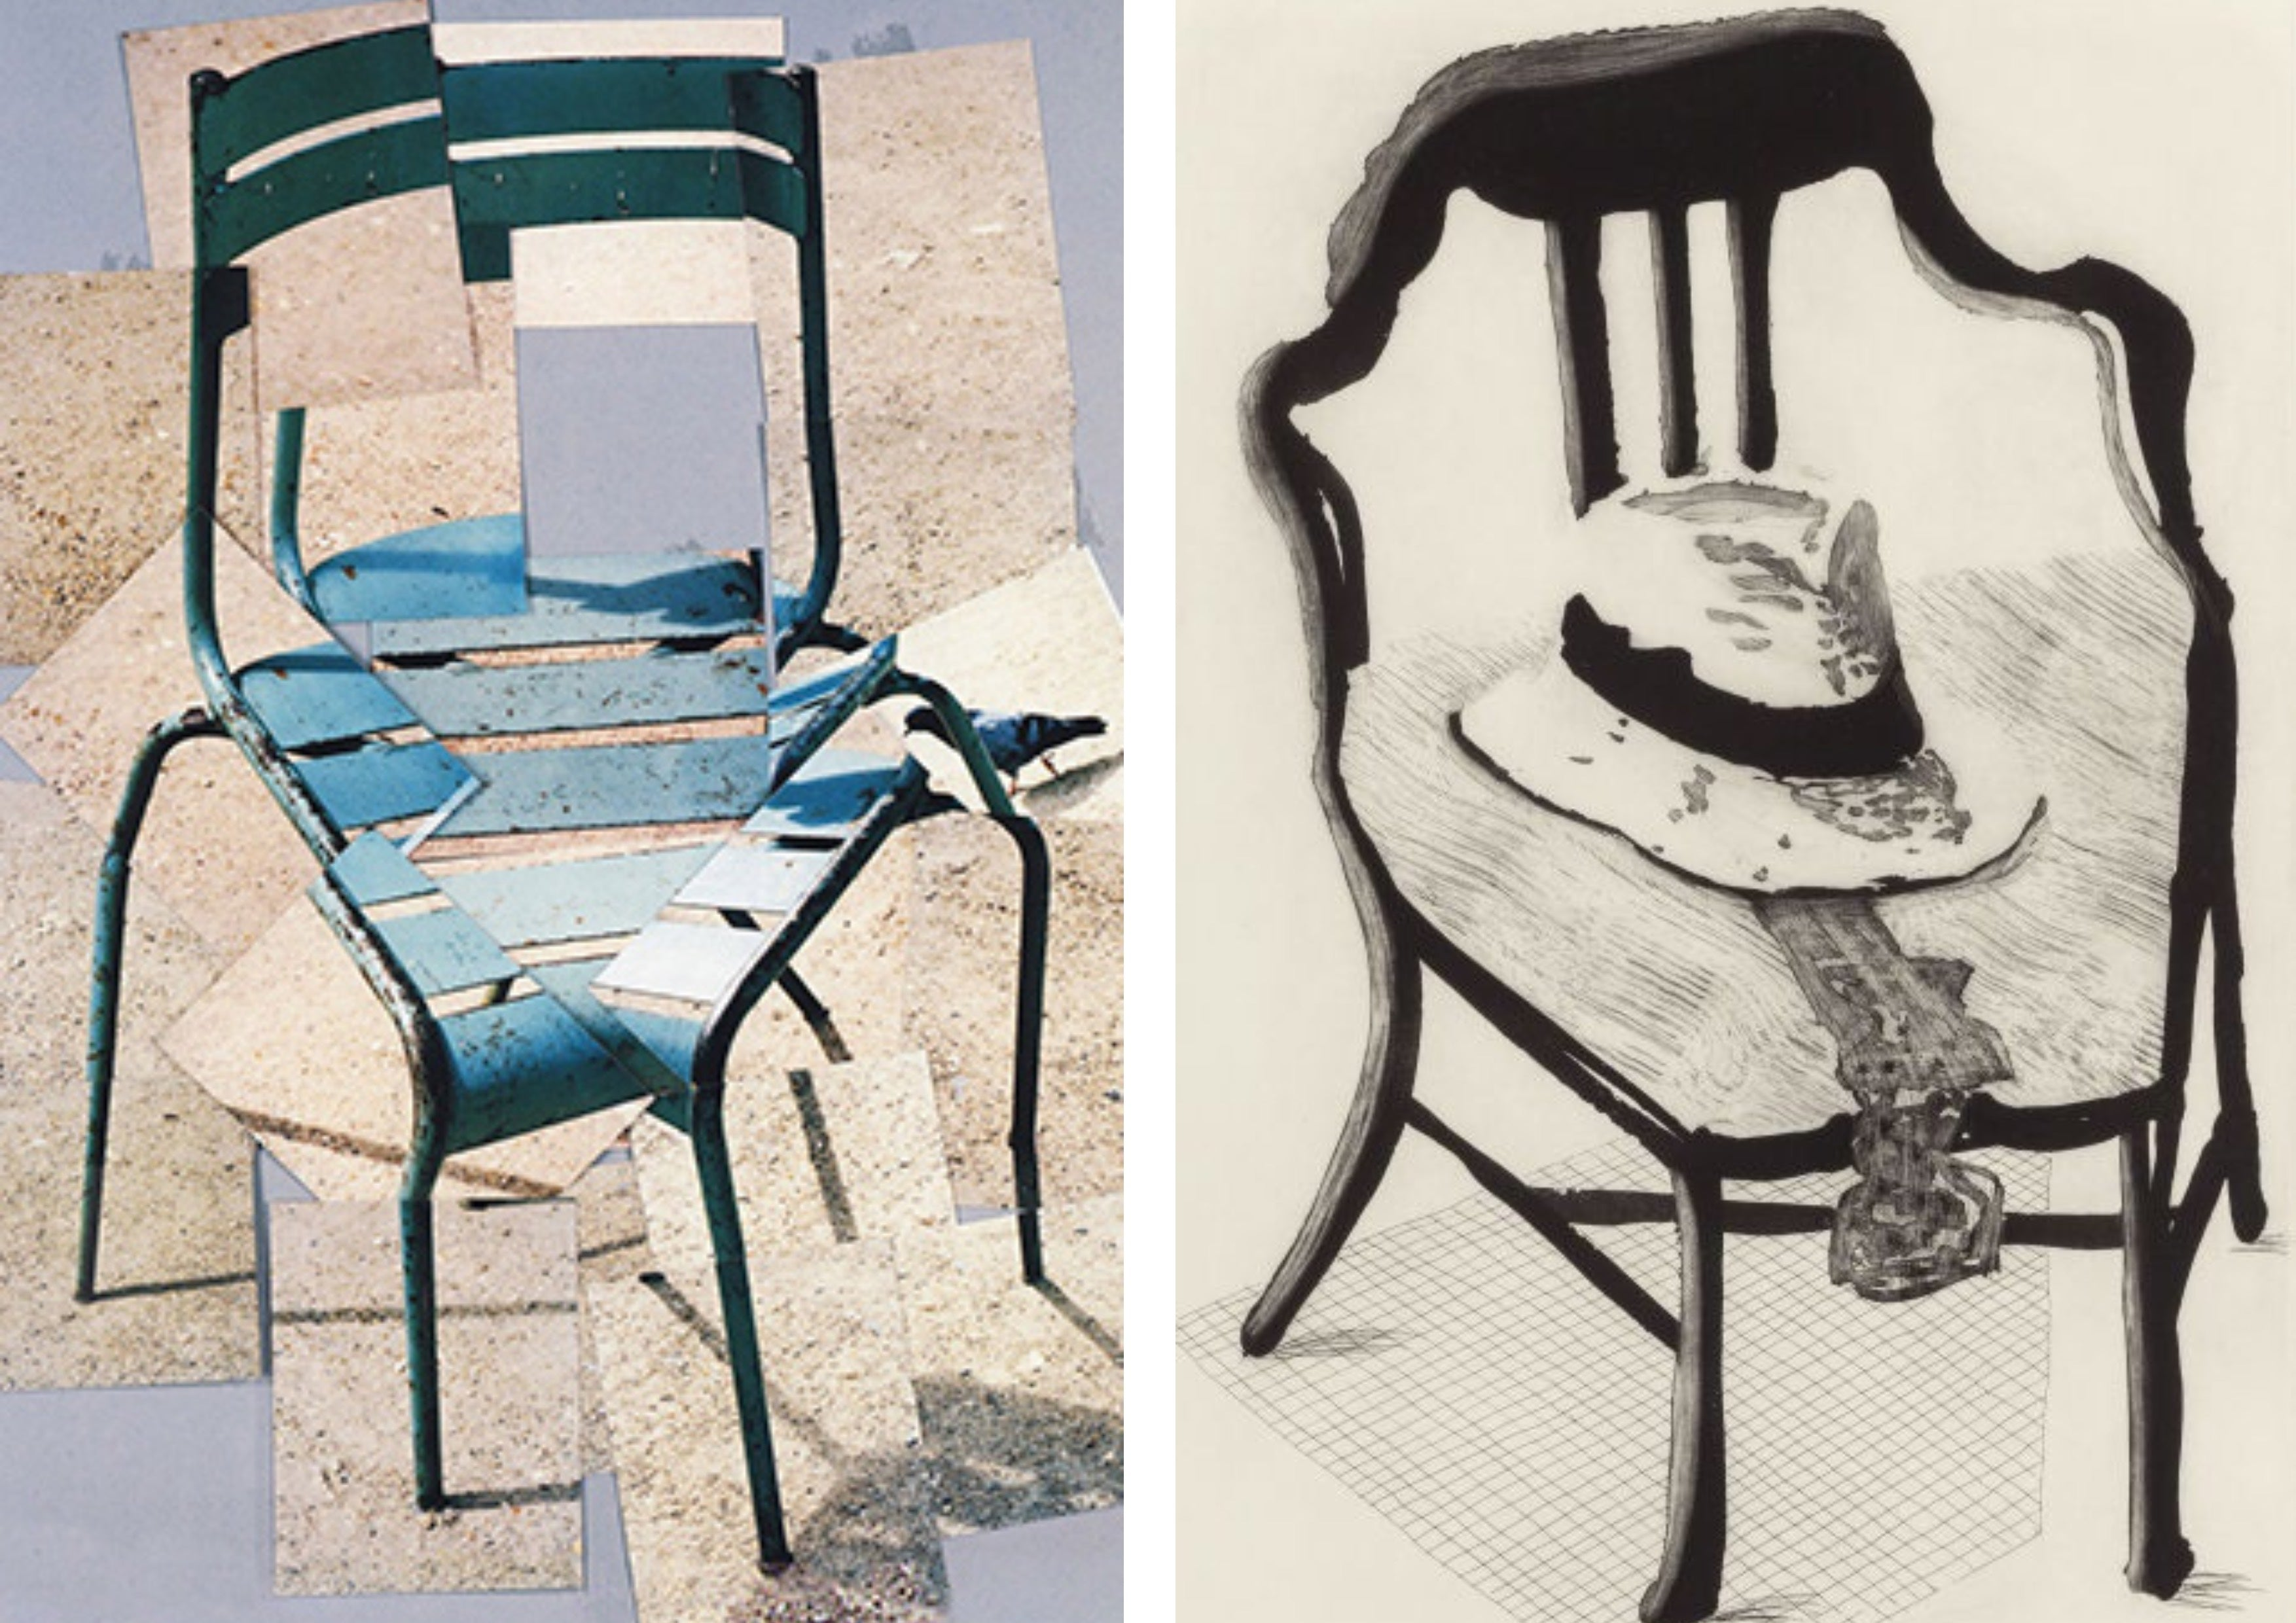 Left: 'A Chair' Photo Collage, 1985. Right: 'Panama Hat with Bow Tie on a Chair', 1998